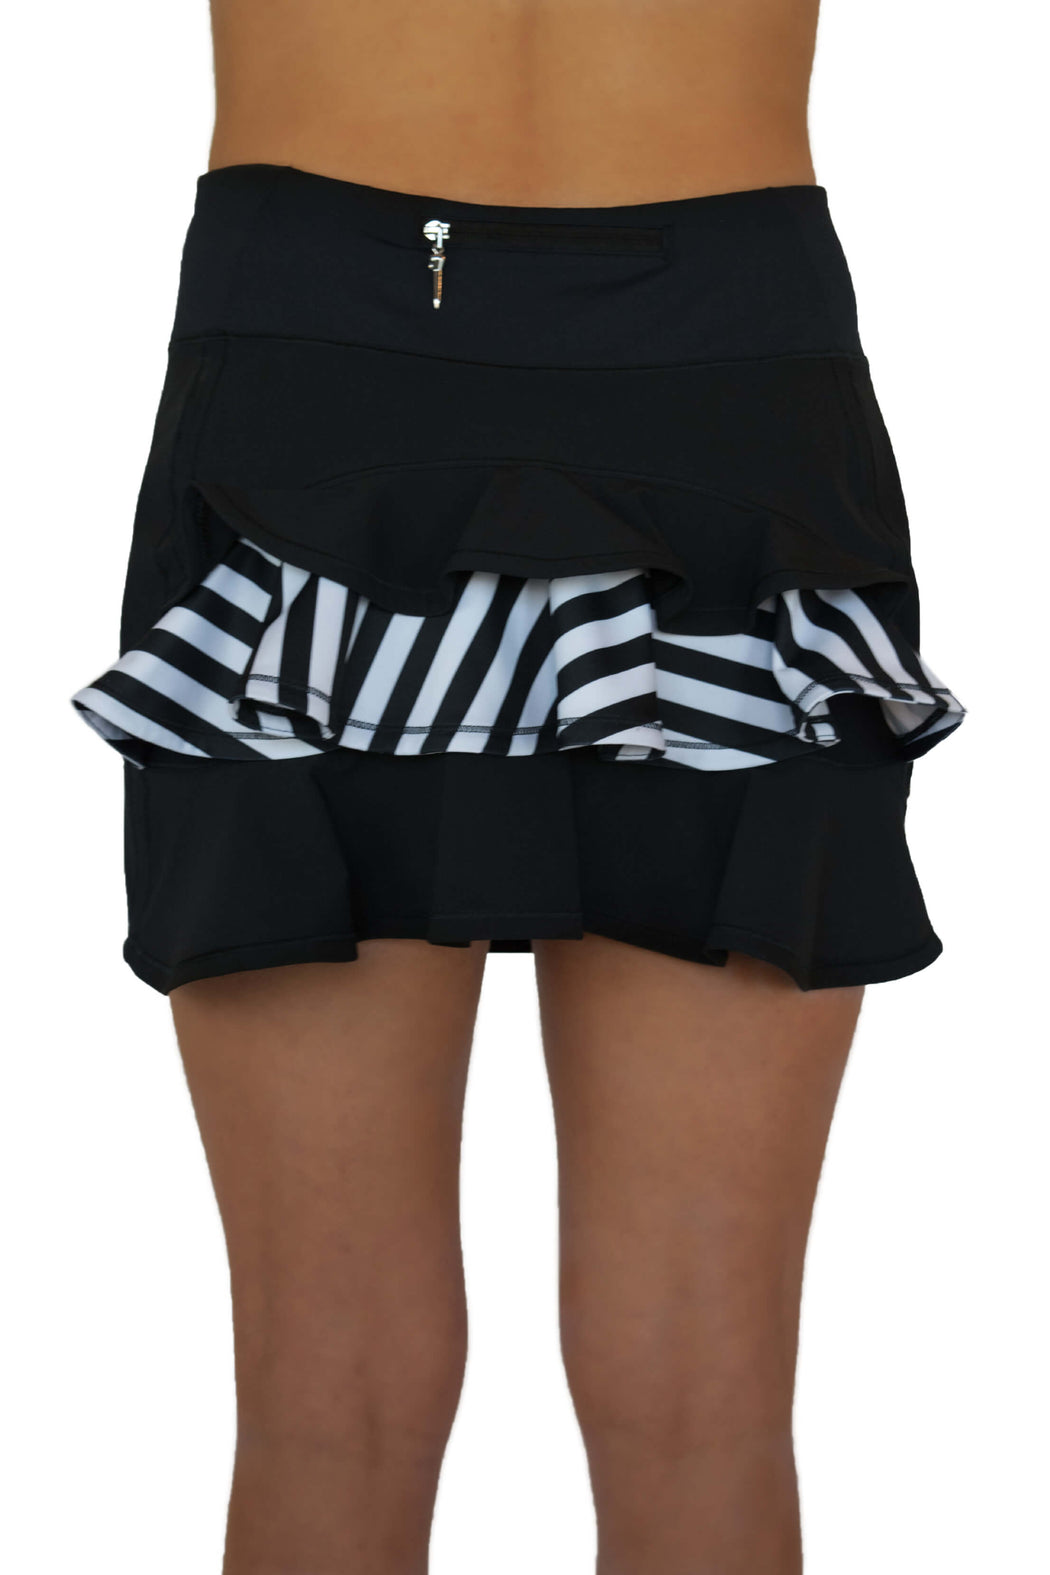 NEW! Ruffle Butt Golf Skirt - Black with Striped Middle Ruffle - FlirTee Golf